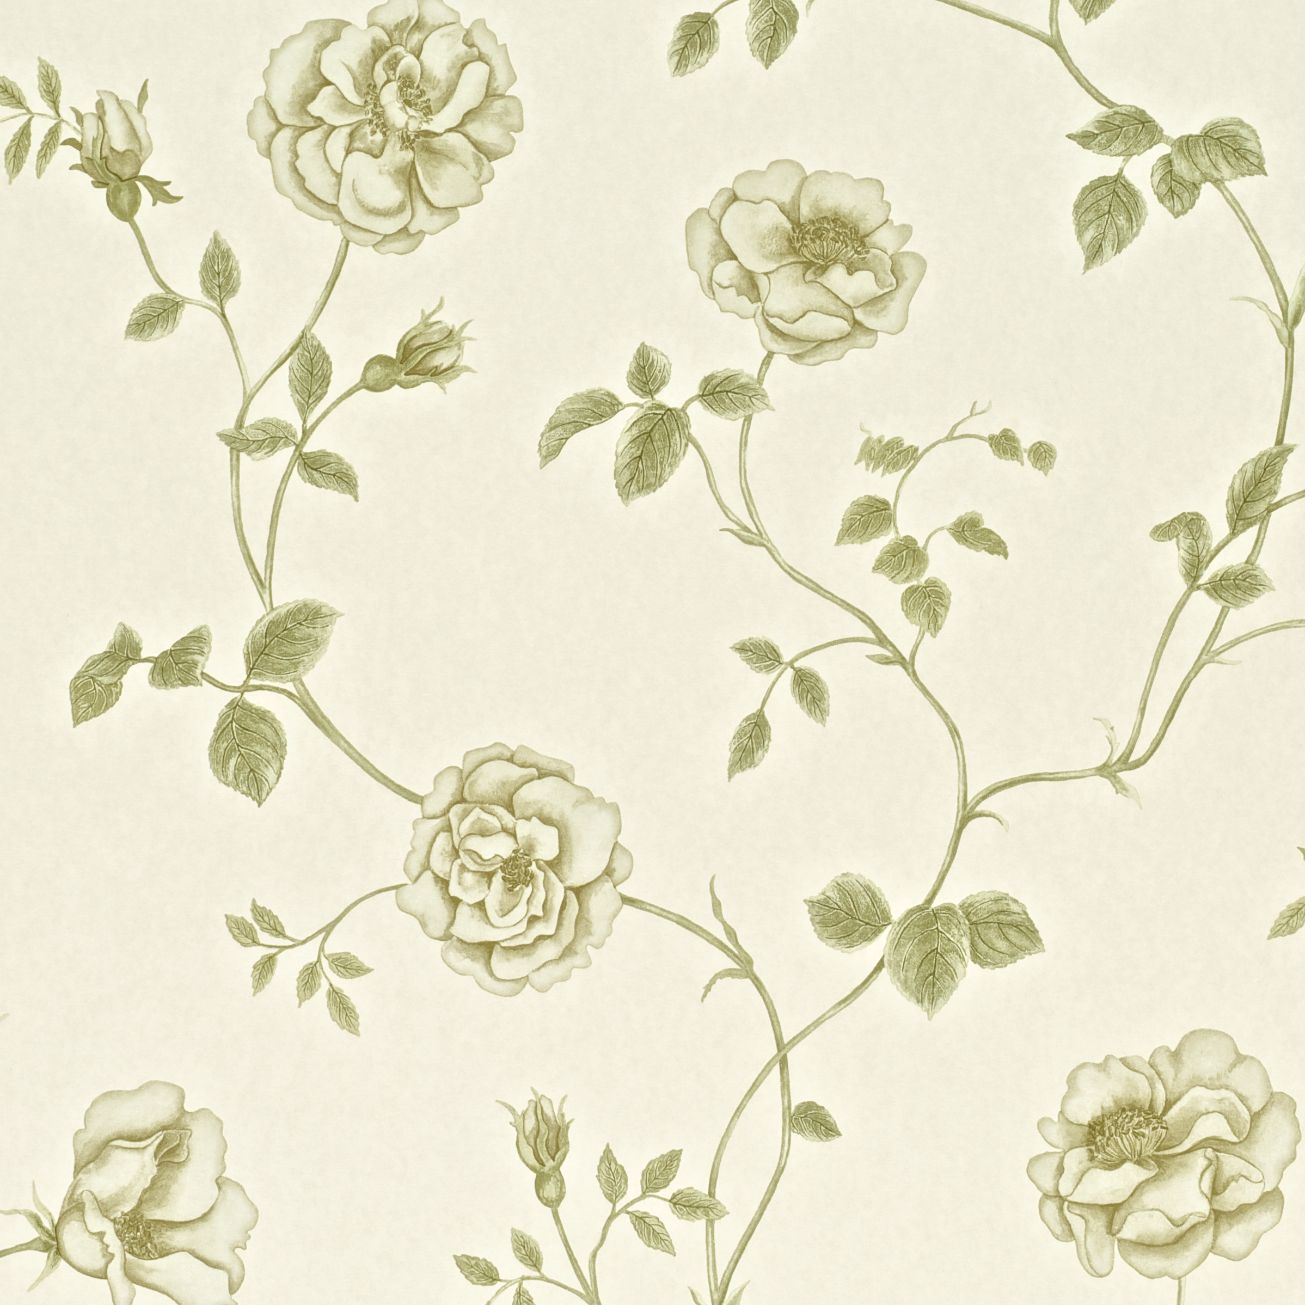 English Vintage Wallpaper